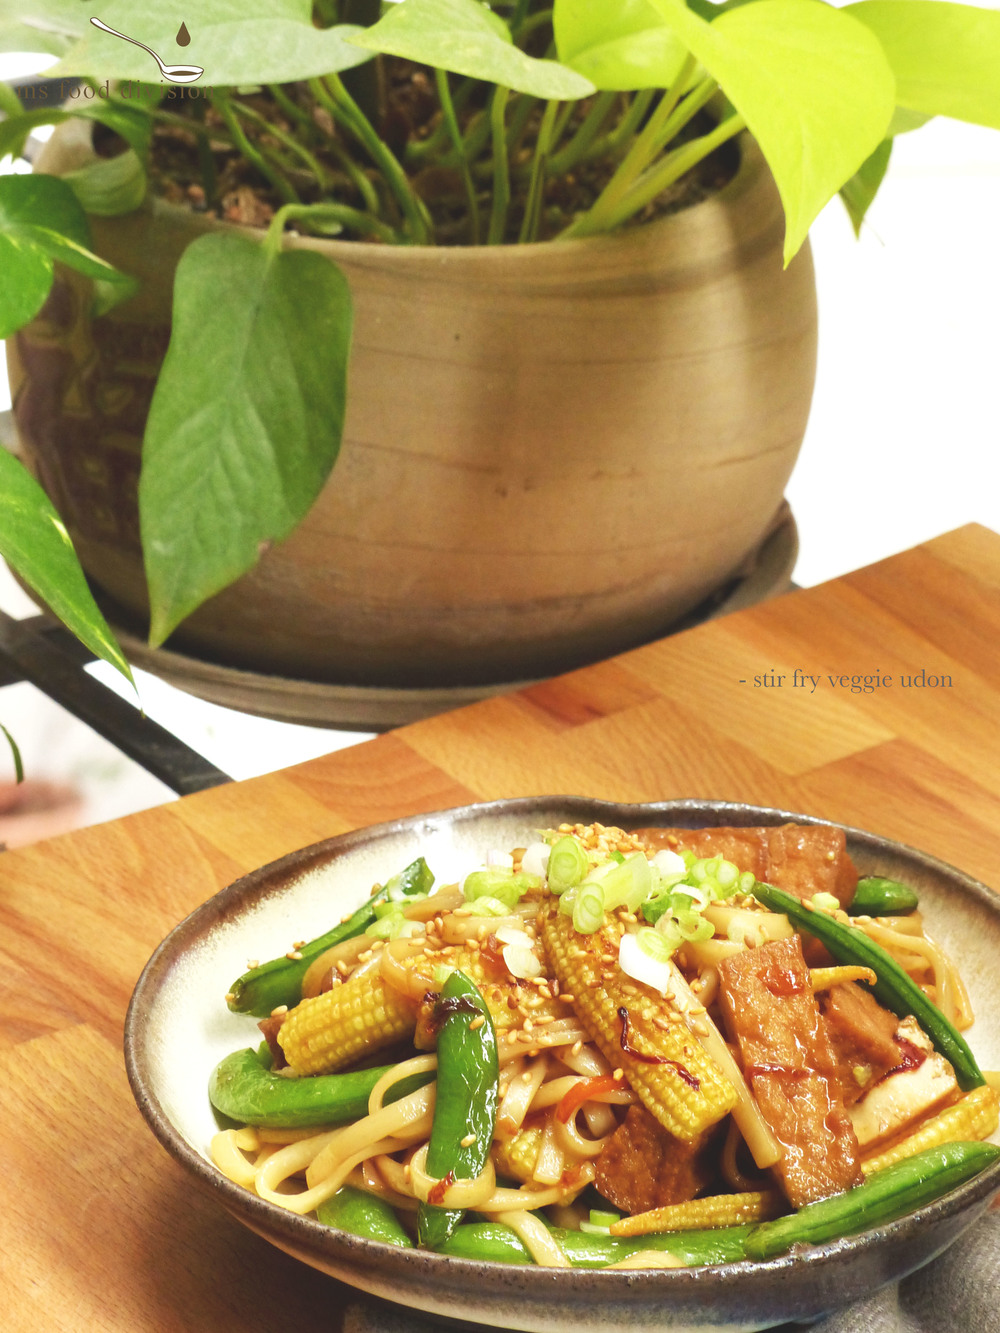 Ingredients (for 1 serving):    100g sugar snap peas  100g baby corn, halved  100g hard/fried tofu, quartered  1-2 spring onion, finely chopped  1 tbsp chopped ginger  1/2 carrot, julienned  100g cooked udon  1/4 cup rice wine  3 tbsp soy sauce  3 tbsp honey  2 tbsp sesame oil  2 tbsp sesame seeds  extra-virgin olive oil   Instructions:     1) Preheat the frying pan with olive oil, add garlic, spring onion, and ginger; stir and cook under medium heat for 2-3 minutes.    2) Add the chopped vegetables and stir; add rice wine, turn the heat to medium high and cook for 1 minute.  Let the alcohol evaporates, then reduce heat to medium low.        3) Add tofu and stir for 2-3 minutes, add udon, soy sauce and honey; stir evenly and cook for another 2-3 minutes.      4) Turn off the heat.  Add some sesame oil to the udon.      5) Transfer to the plate and garnish with some sesame seeds and chopped spring onion/coriander if you have any.  And it is ready to serve.  Simple and quick!